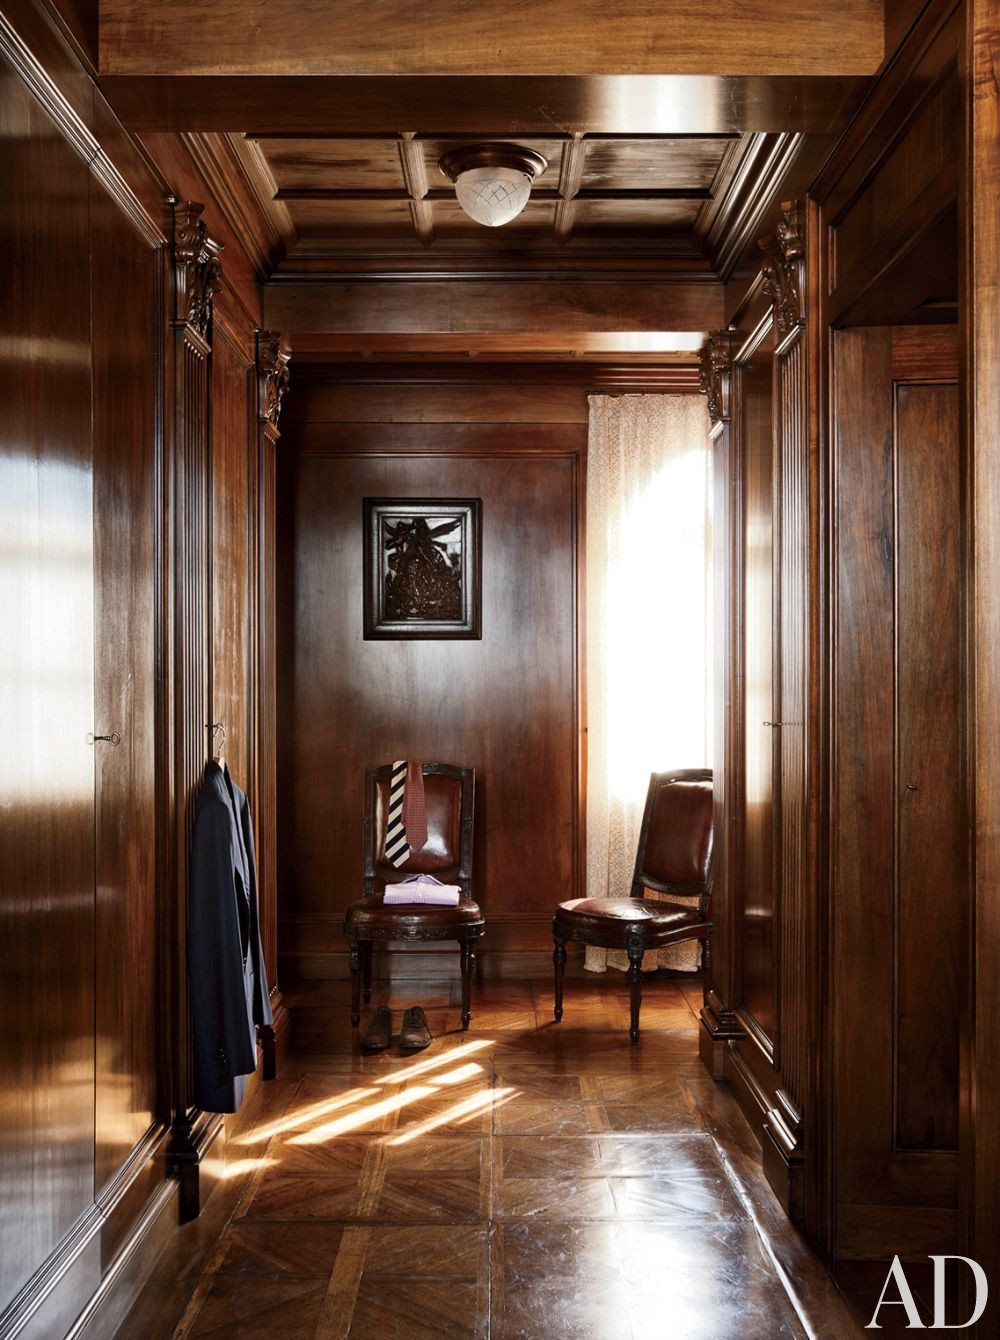 Traditional Dressing Room/Closet by Studio Peregalli in Oderzo, Italy